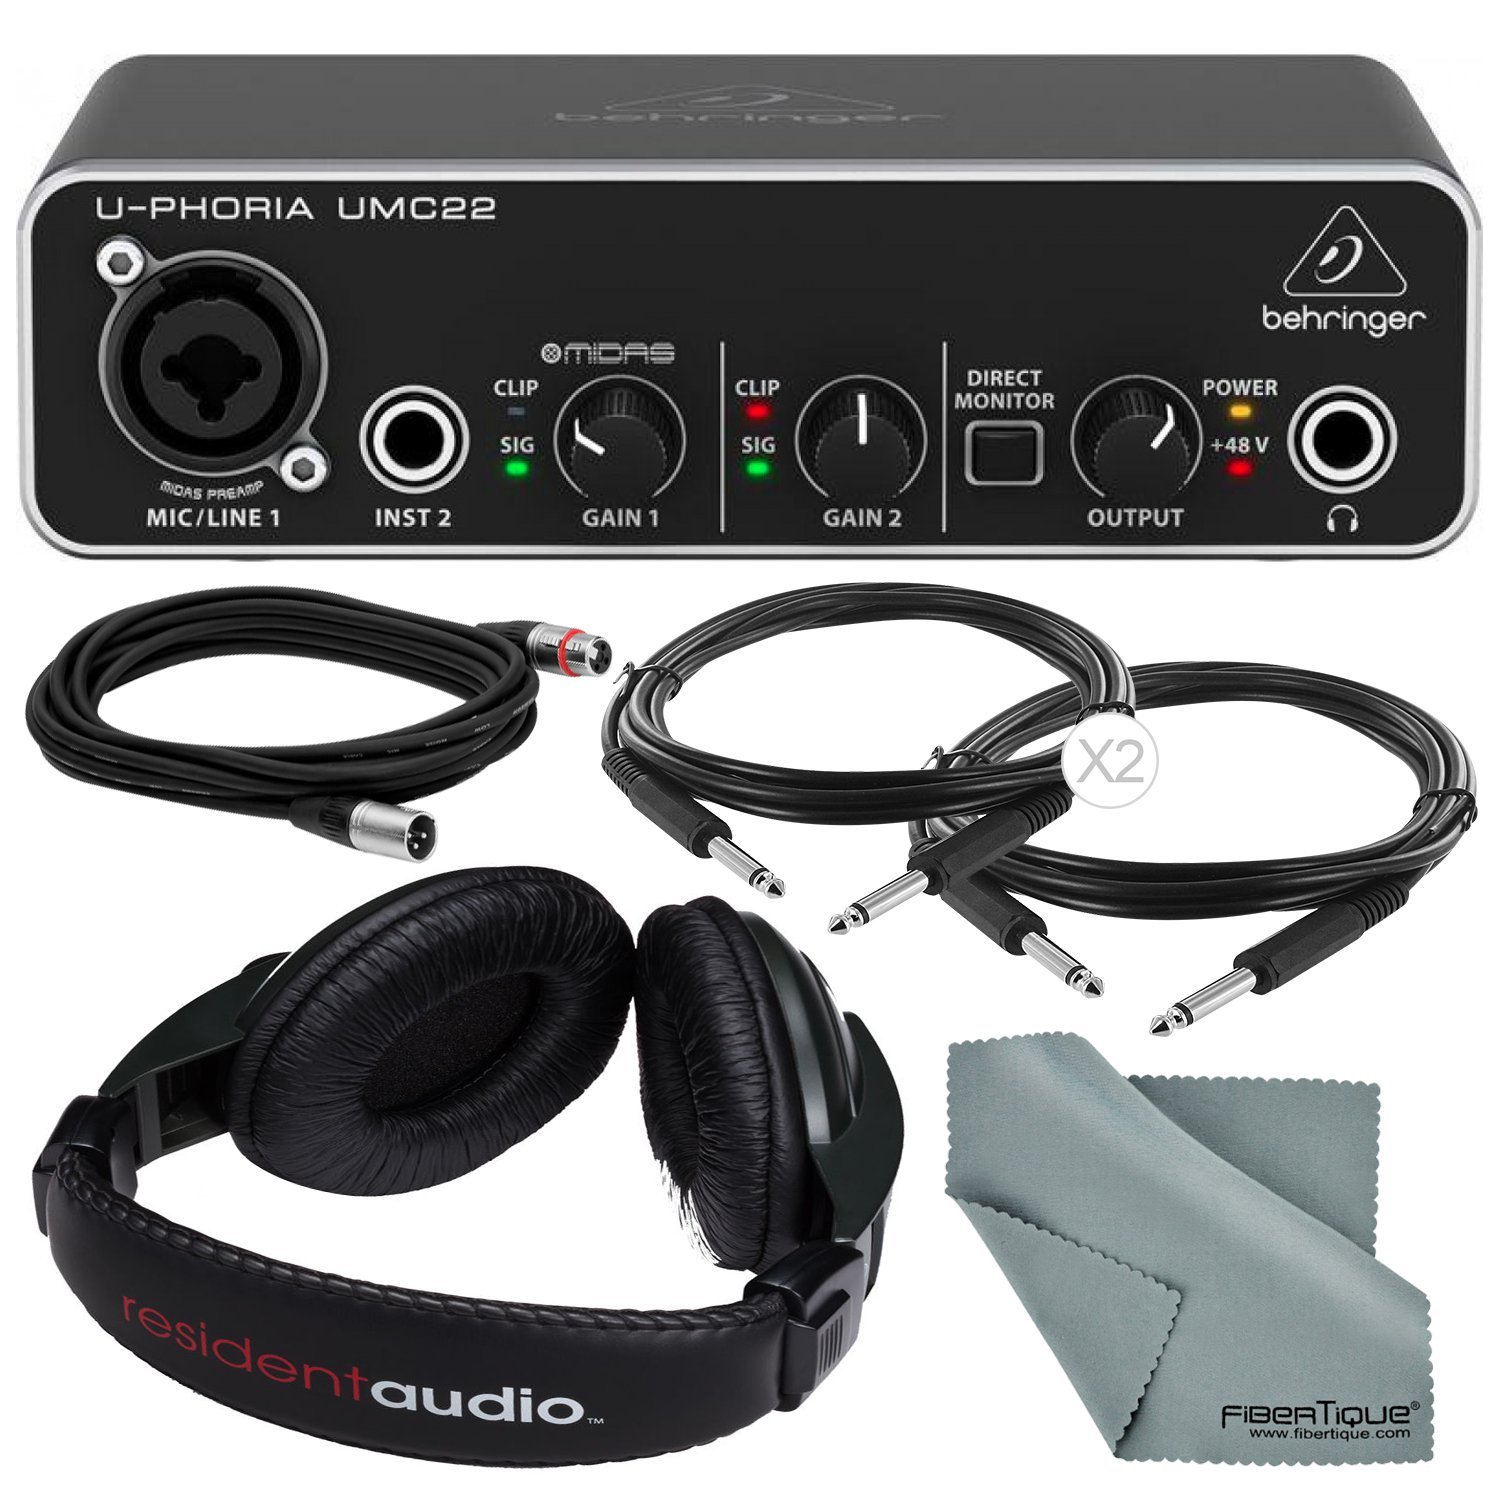 Behringer U-PHORIA UMC22 2in2out USB Audio Interface and Accessory Bundle w/ Headphones + Xpix 1/4'' and XLR Cable + Fibertique Cloth